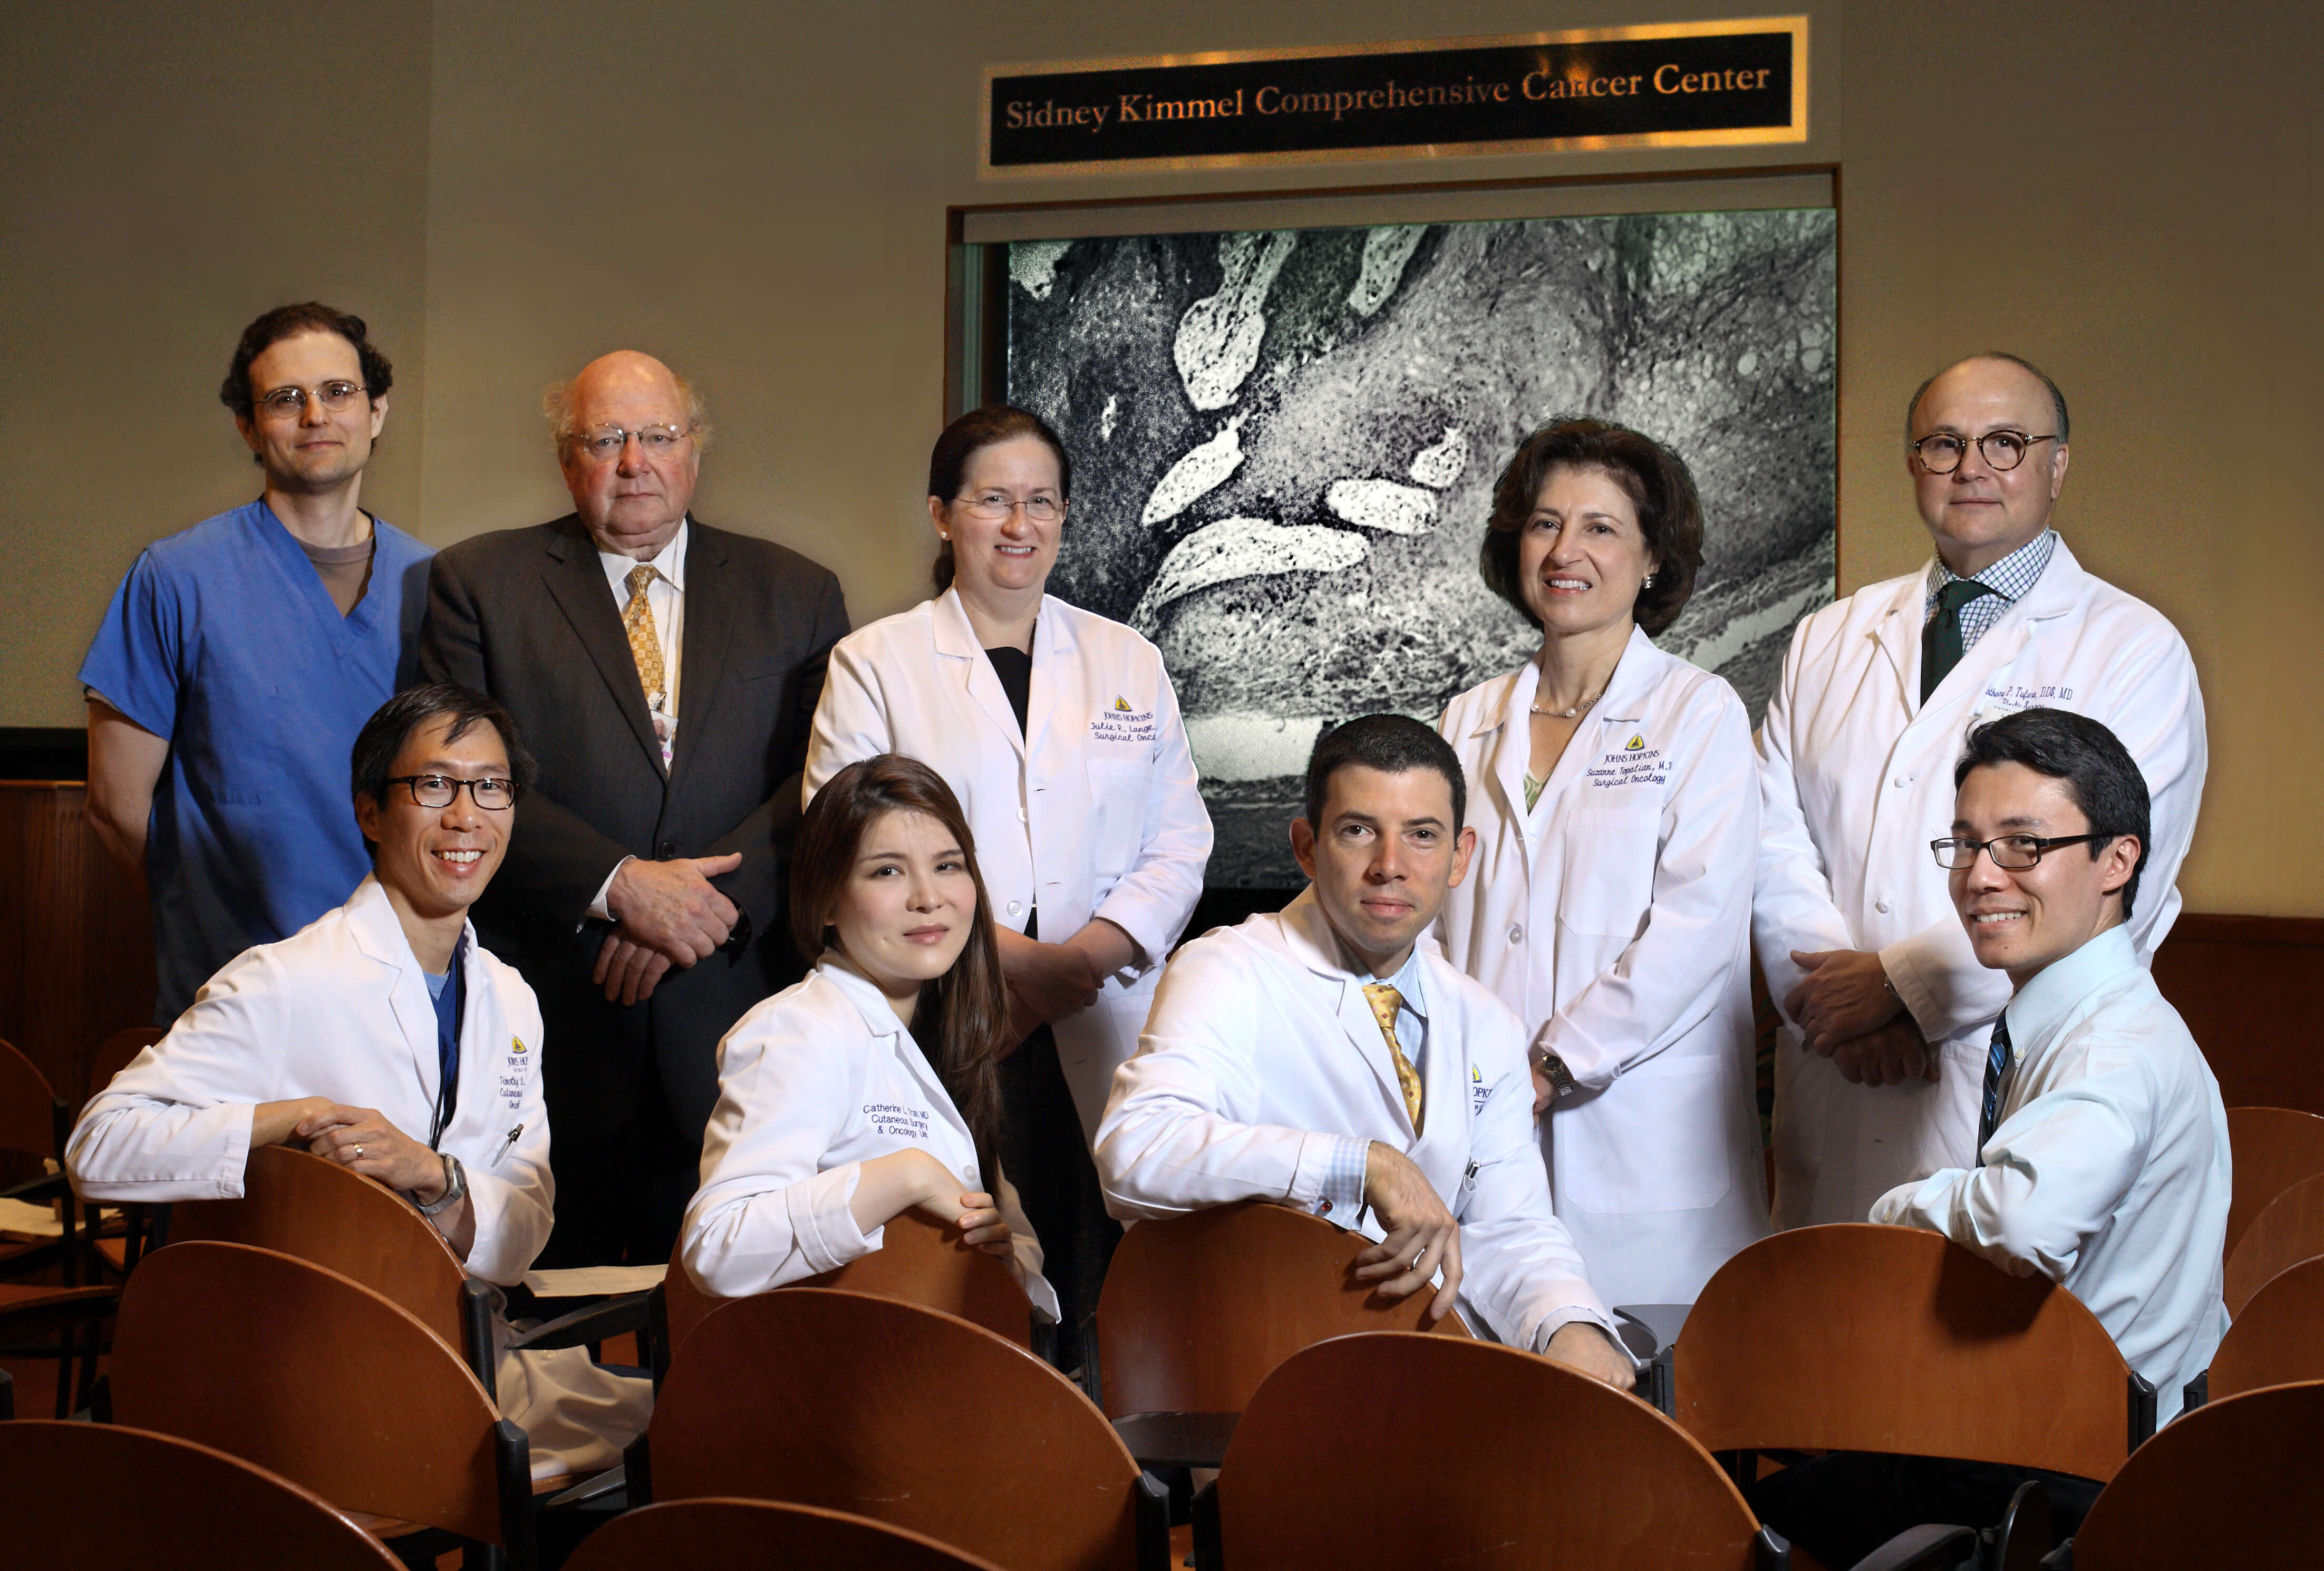 Johns Hopkins Melanoma Tumor Board